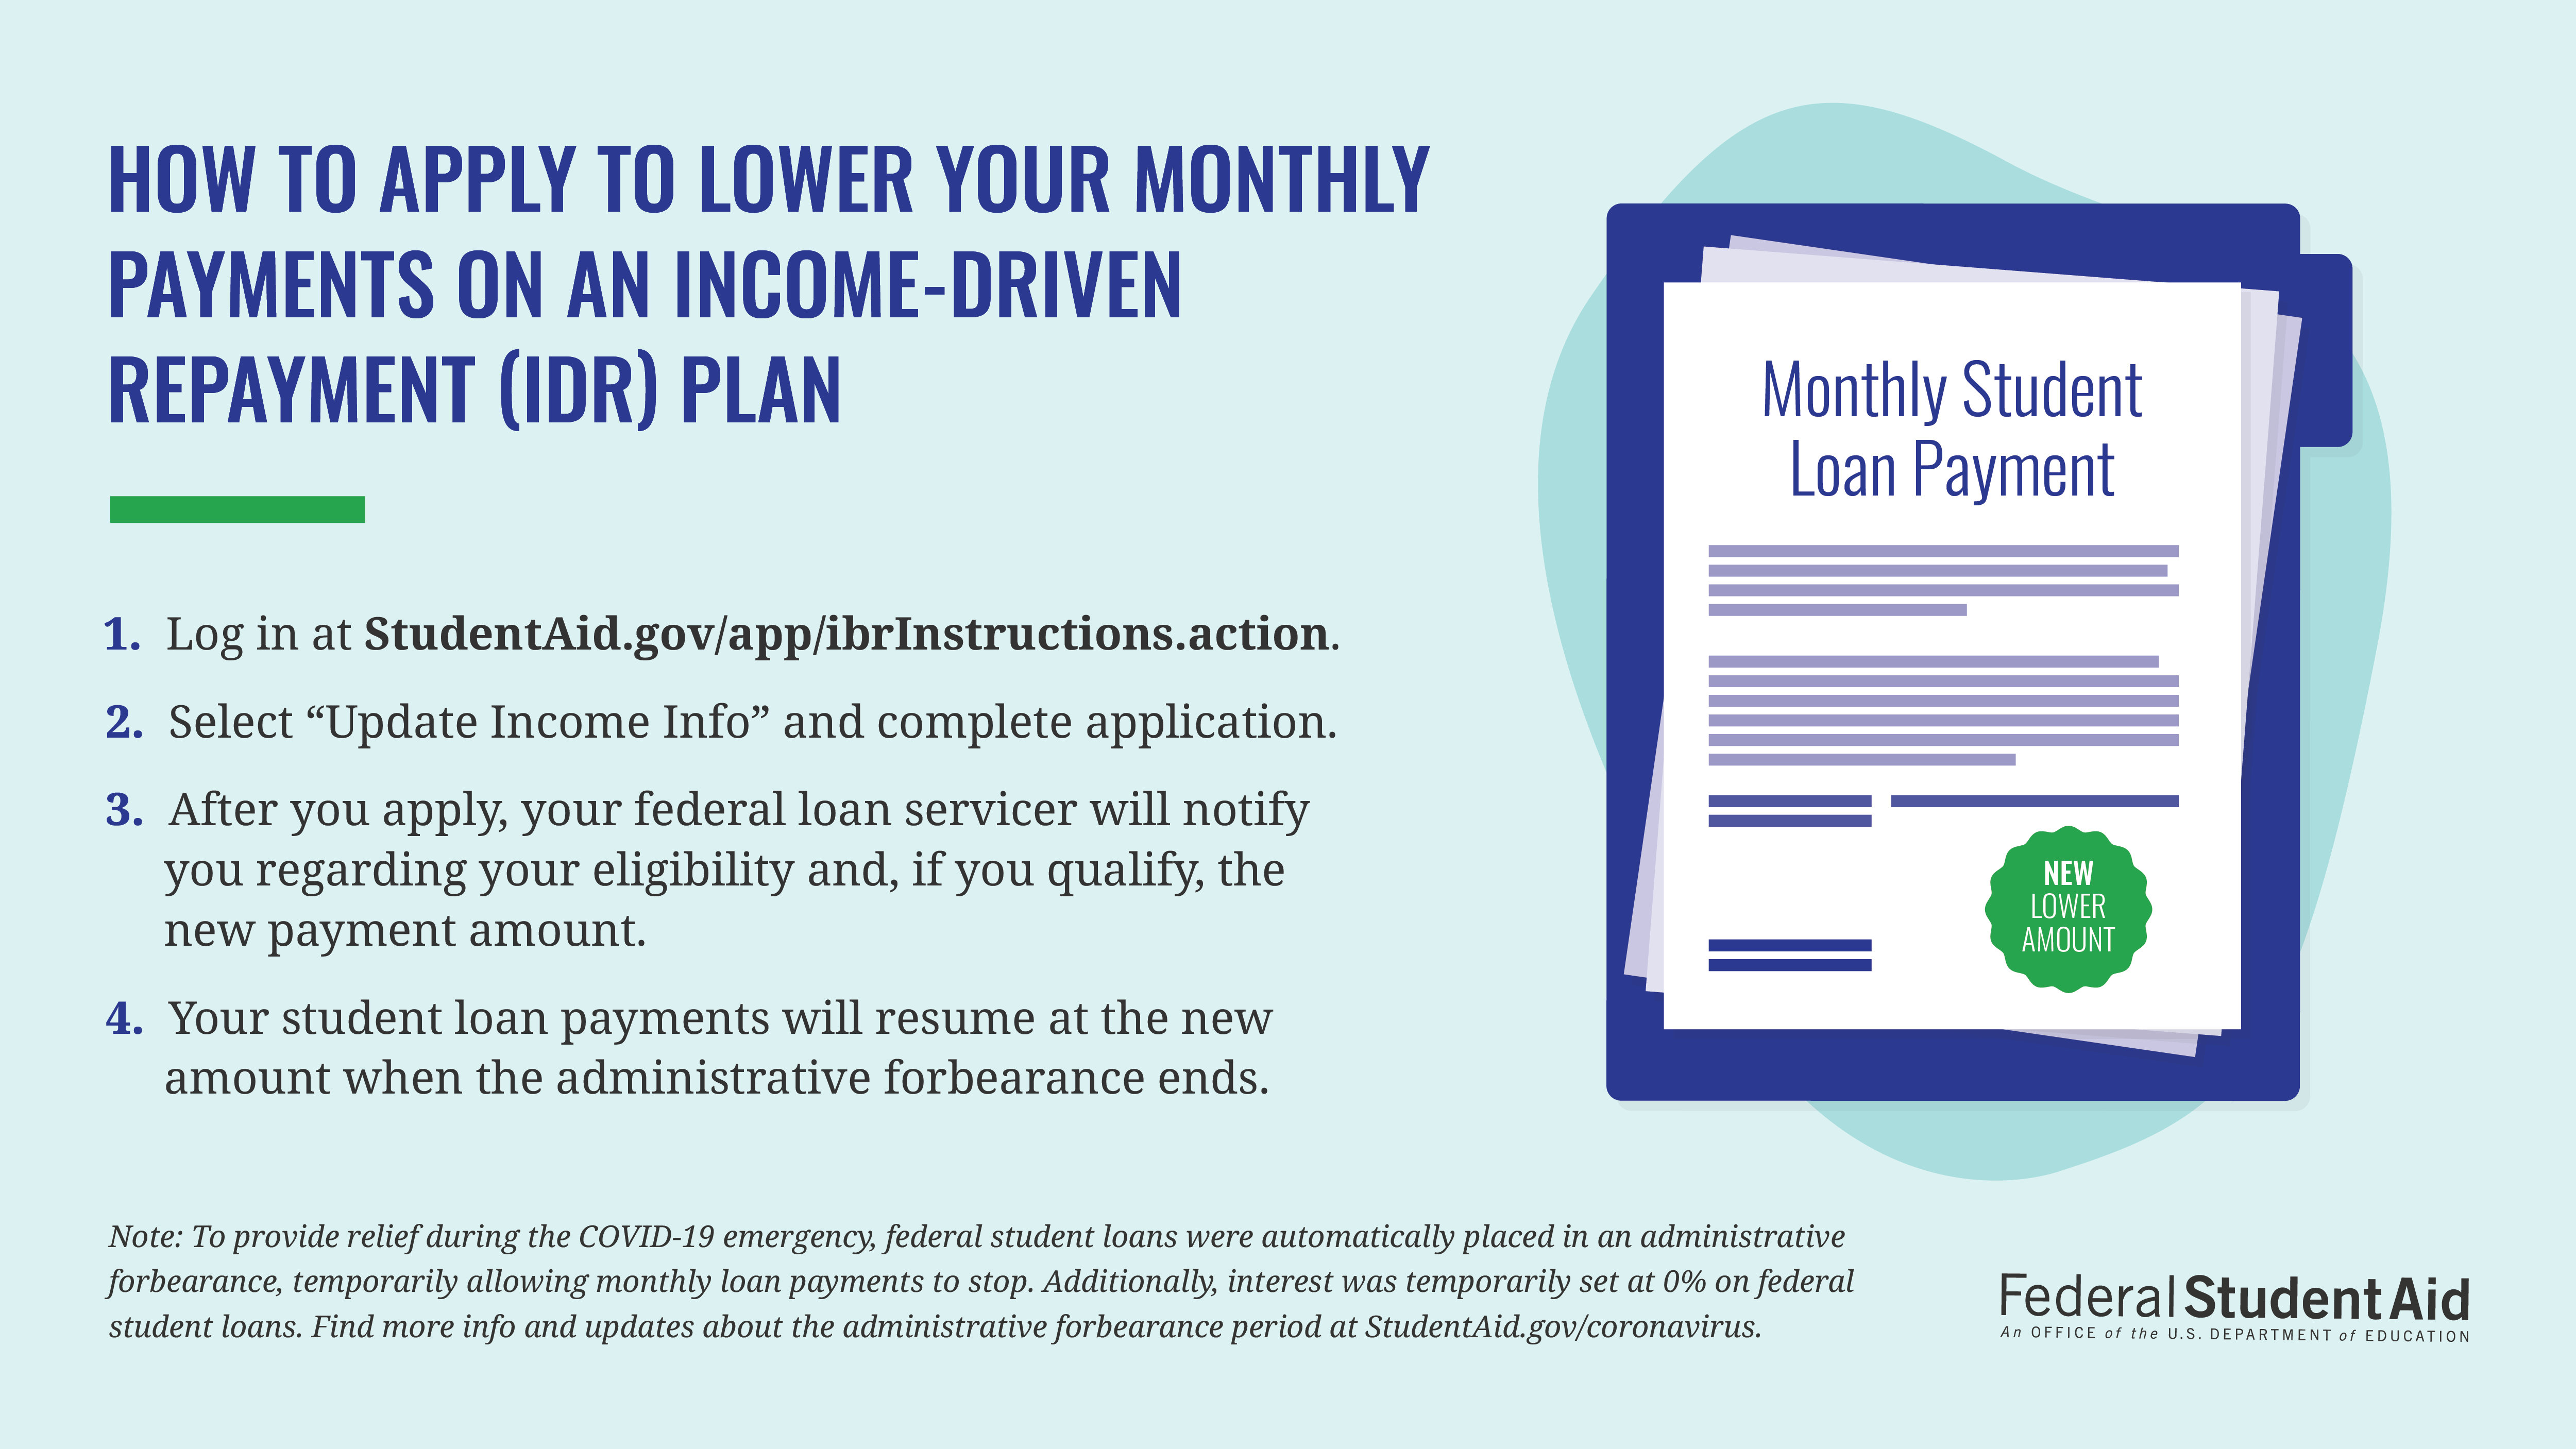 """How To Apply to Lower Your Monthly Payments on an Income-Driven Repayment (IDR) Plan  1.Log in at StudentAid.gov/app/ibrinstructions.action. 2. Select """"Update Income Info"""" and complete application. 3. After you apply, your federal loan servicer will notify you regarding your eligibility and, if you qualify, the new payment amount.  4. Your student loan payments will resume at the new amount when the administrative forbearance ends.  Note: To provide relief during the COVID-19 emergency, federal student loans were automatically placed in an administrative forbearance, temporarily allowing monthly loan payments to stop. Additionally, interest was temporarily set at 0% on federal student loans. Find more info and updates about the administrative forbearance period at StudentAid.gov/coronavirus."""